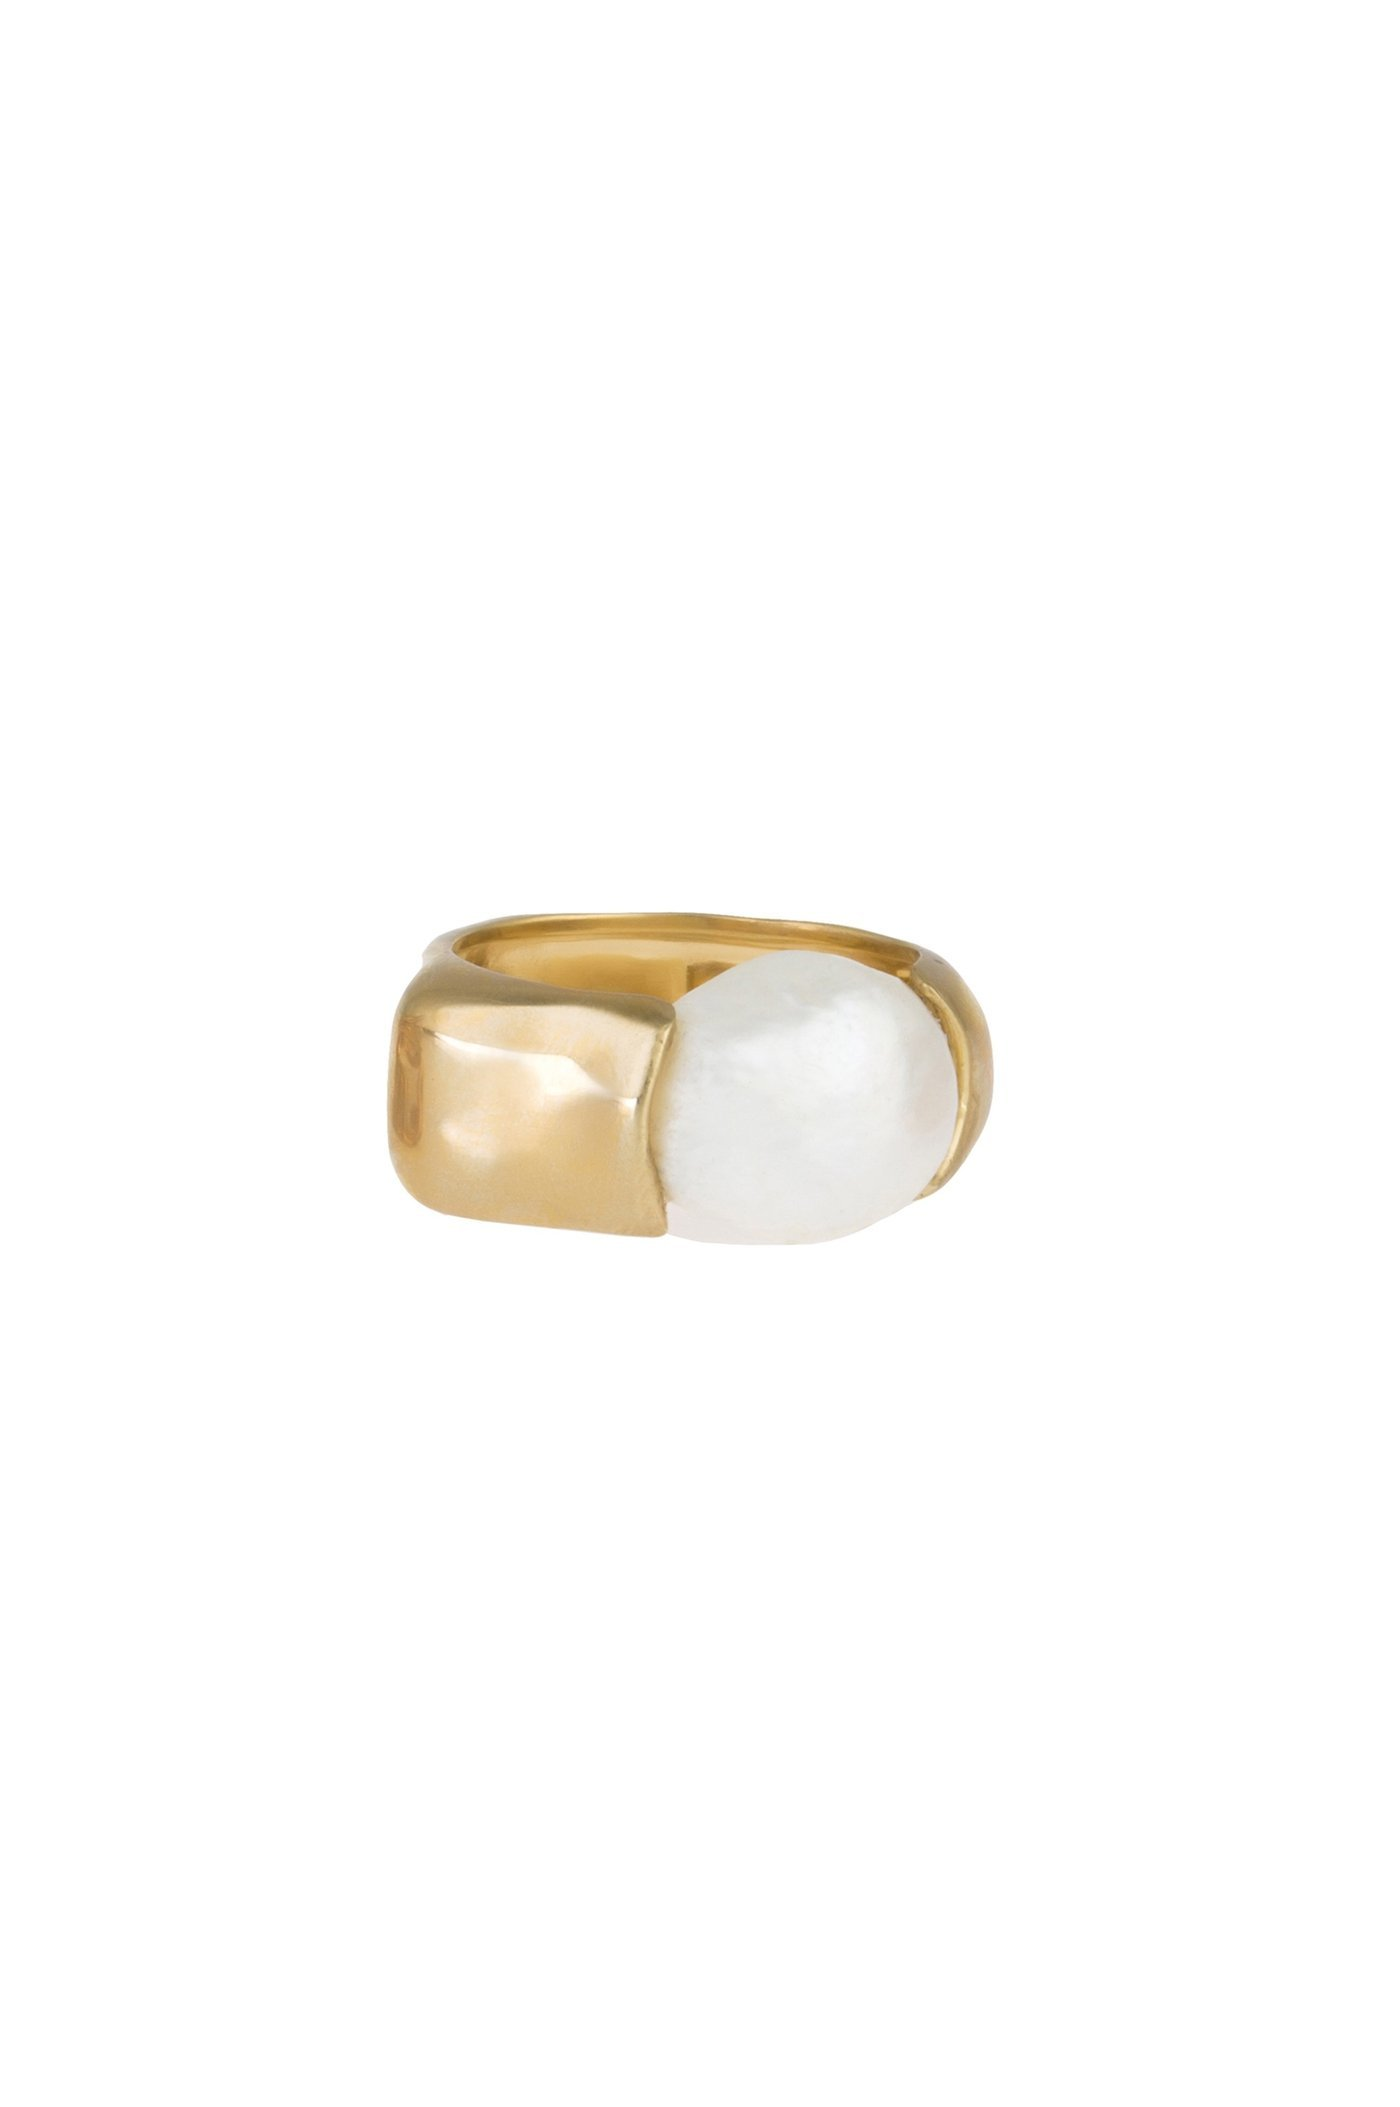 JOANNA LAURA CONSTANTINE   Joanna Laura Constantine Feminine Waves Ring With Cultured Pearl   Goxip